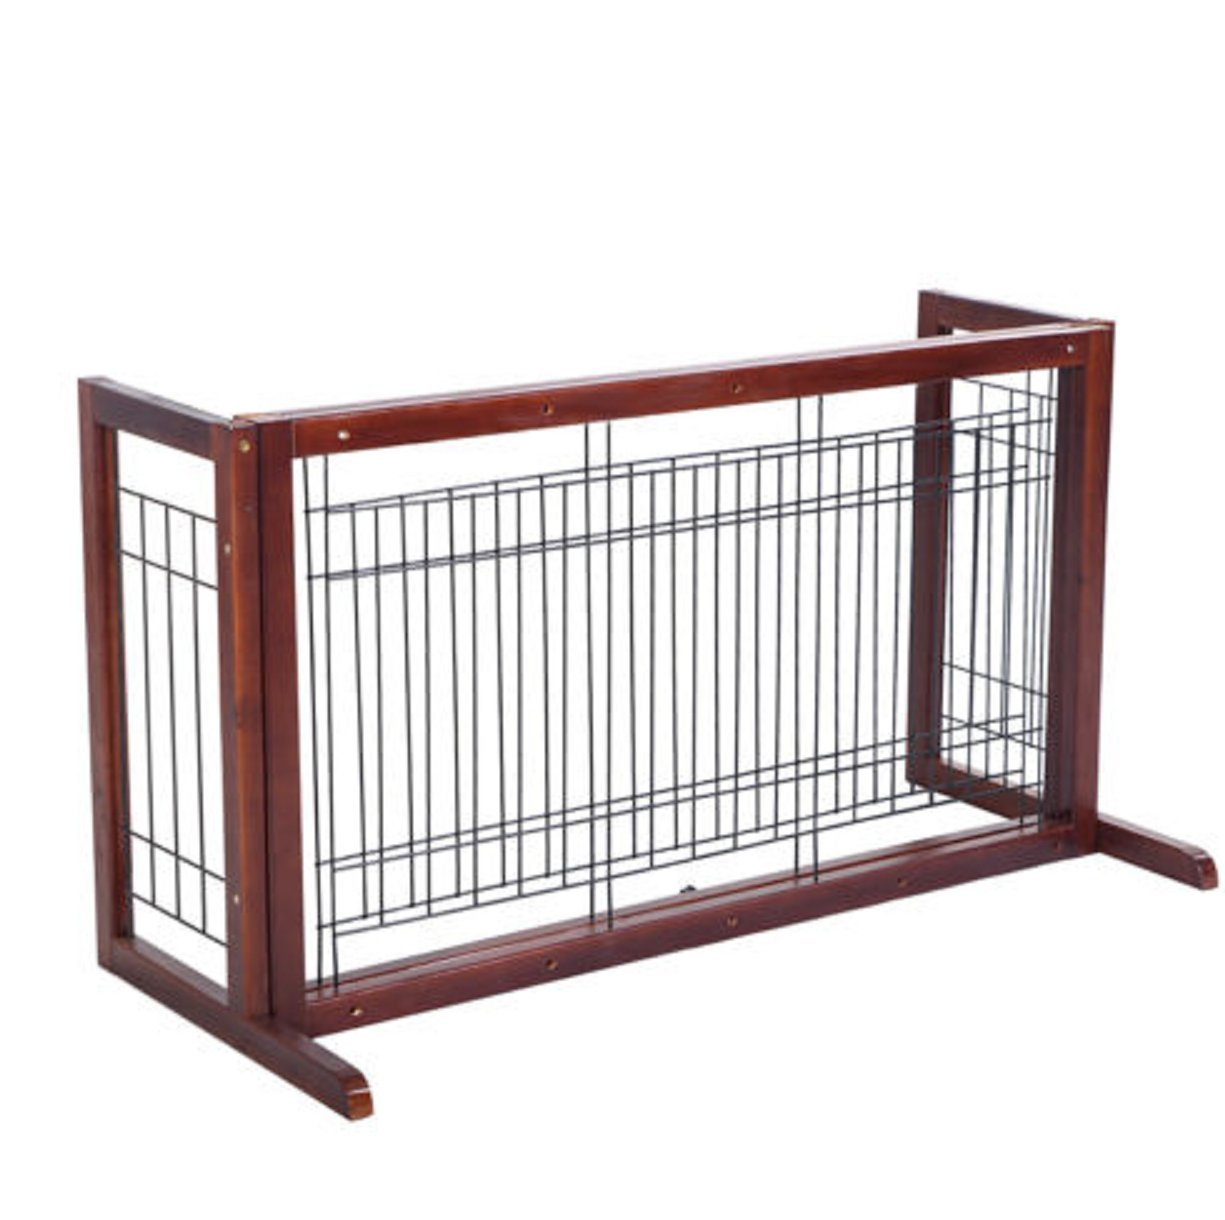 Gate Dog Wood Door Paw Wide Tall Adjustable Indoor Solid Construction Pet by SisterYou (Image #1)